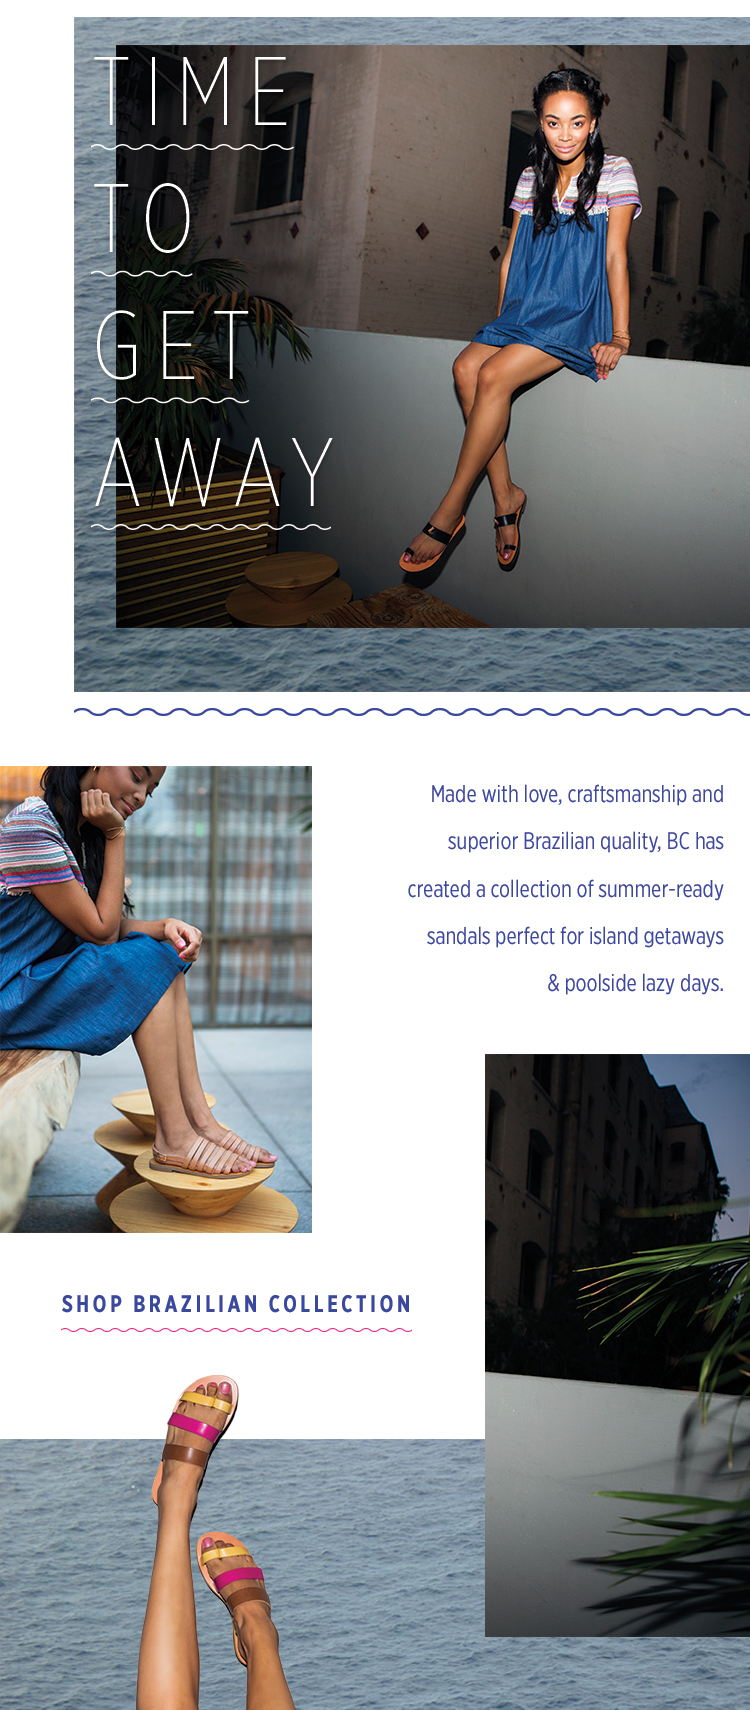 BC FOOTWEAR WEBSITE/EMAILS